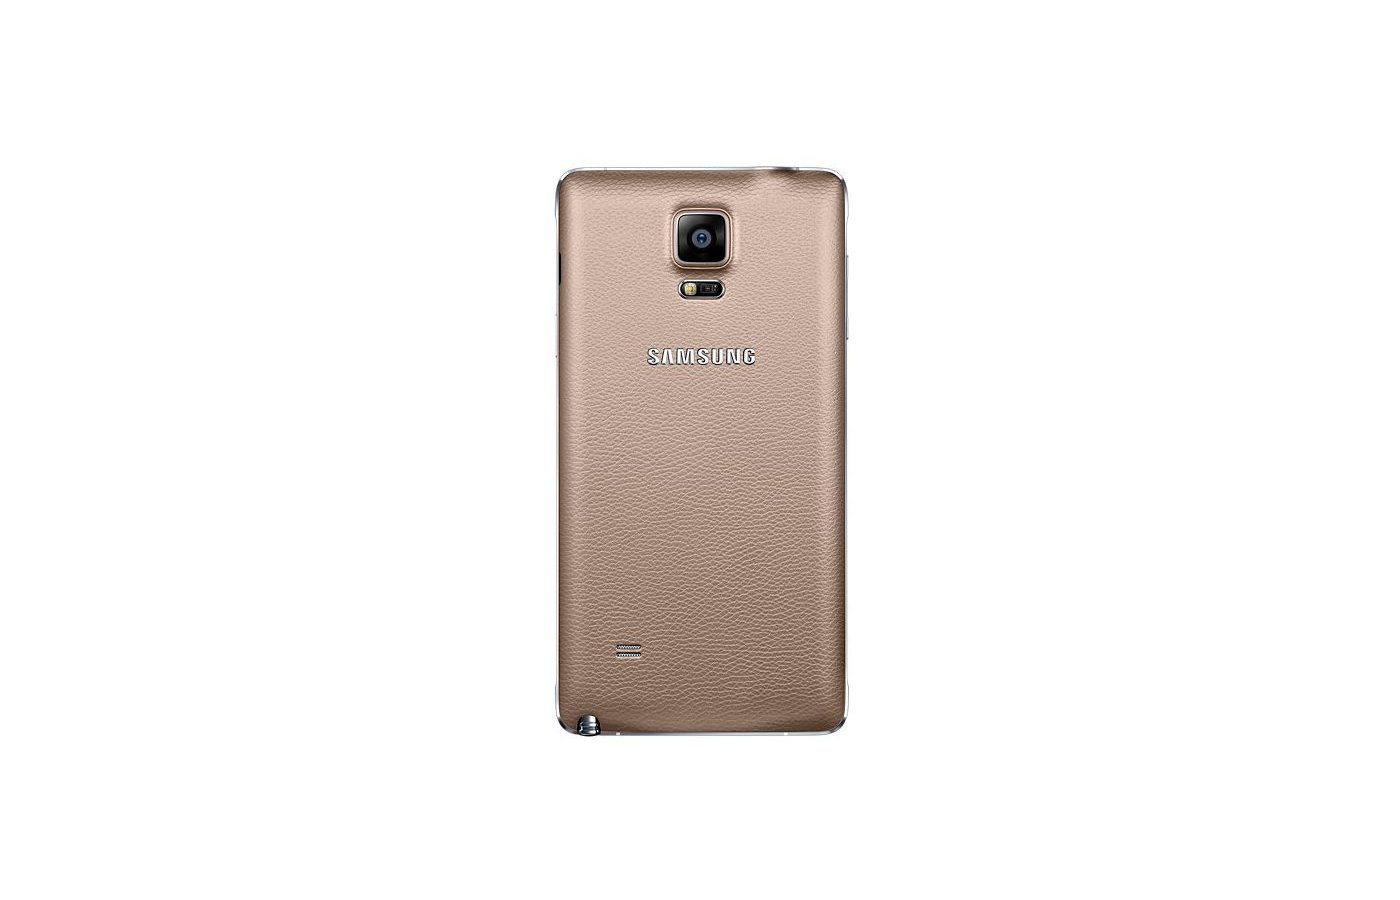 Чехол Samsung BackCover для Galaxy Note 4 (SM-N910) (EF-ON910SEEGRU) gold